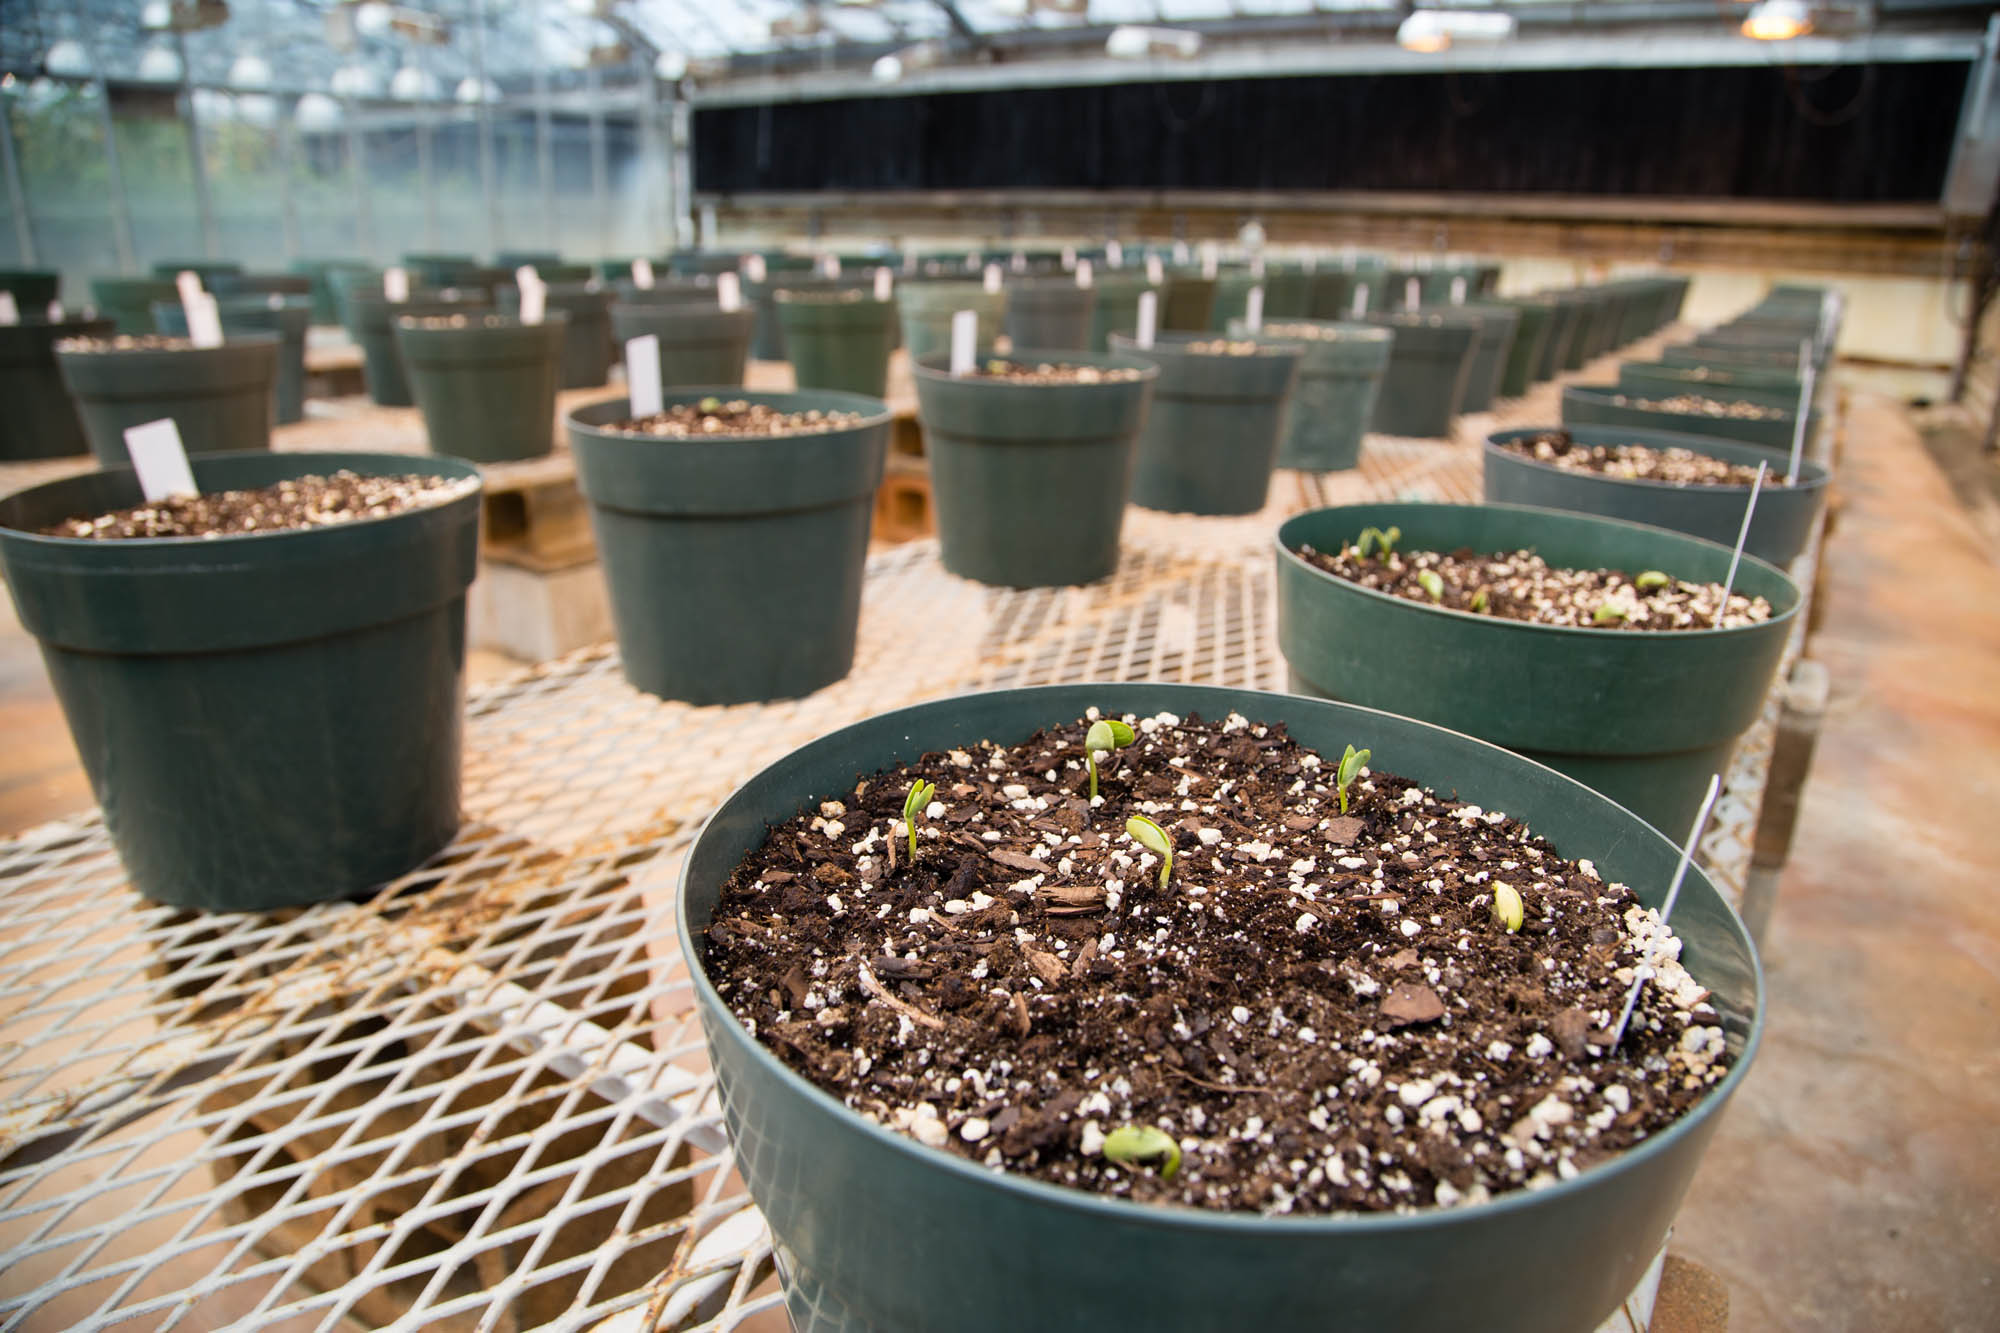 Soybean Plants in Research Lab